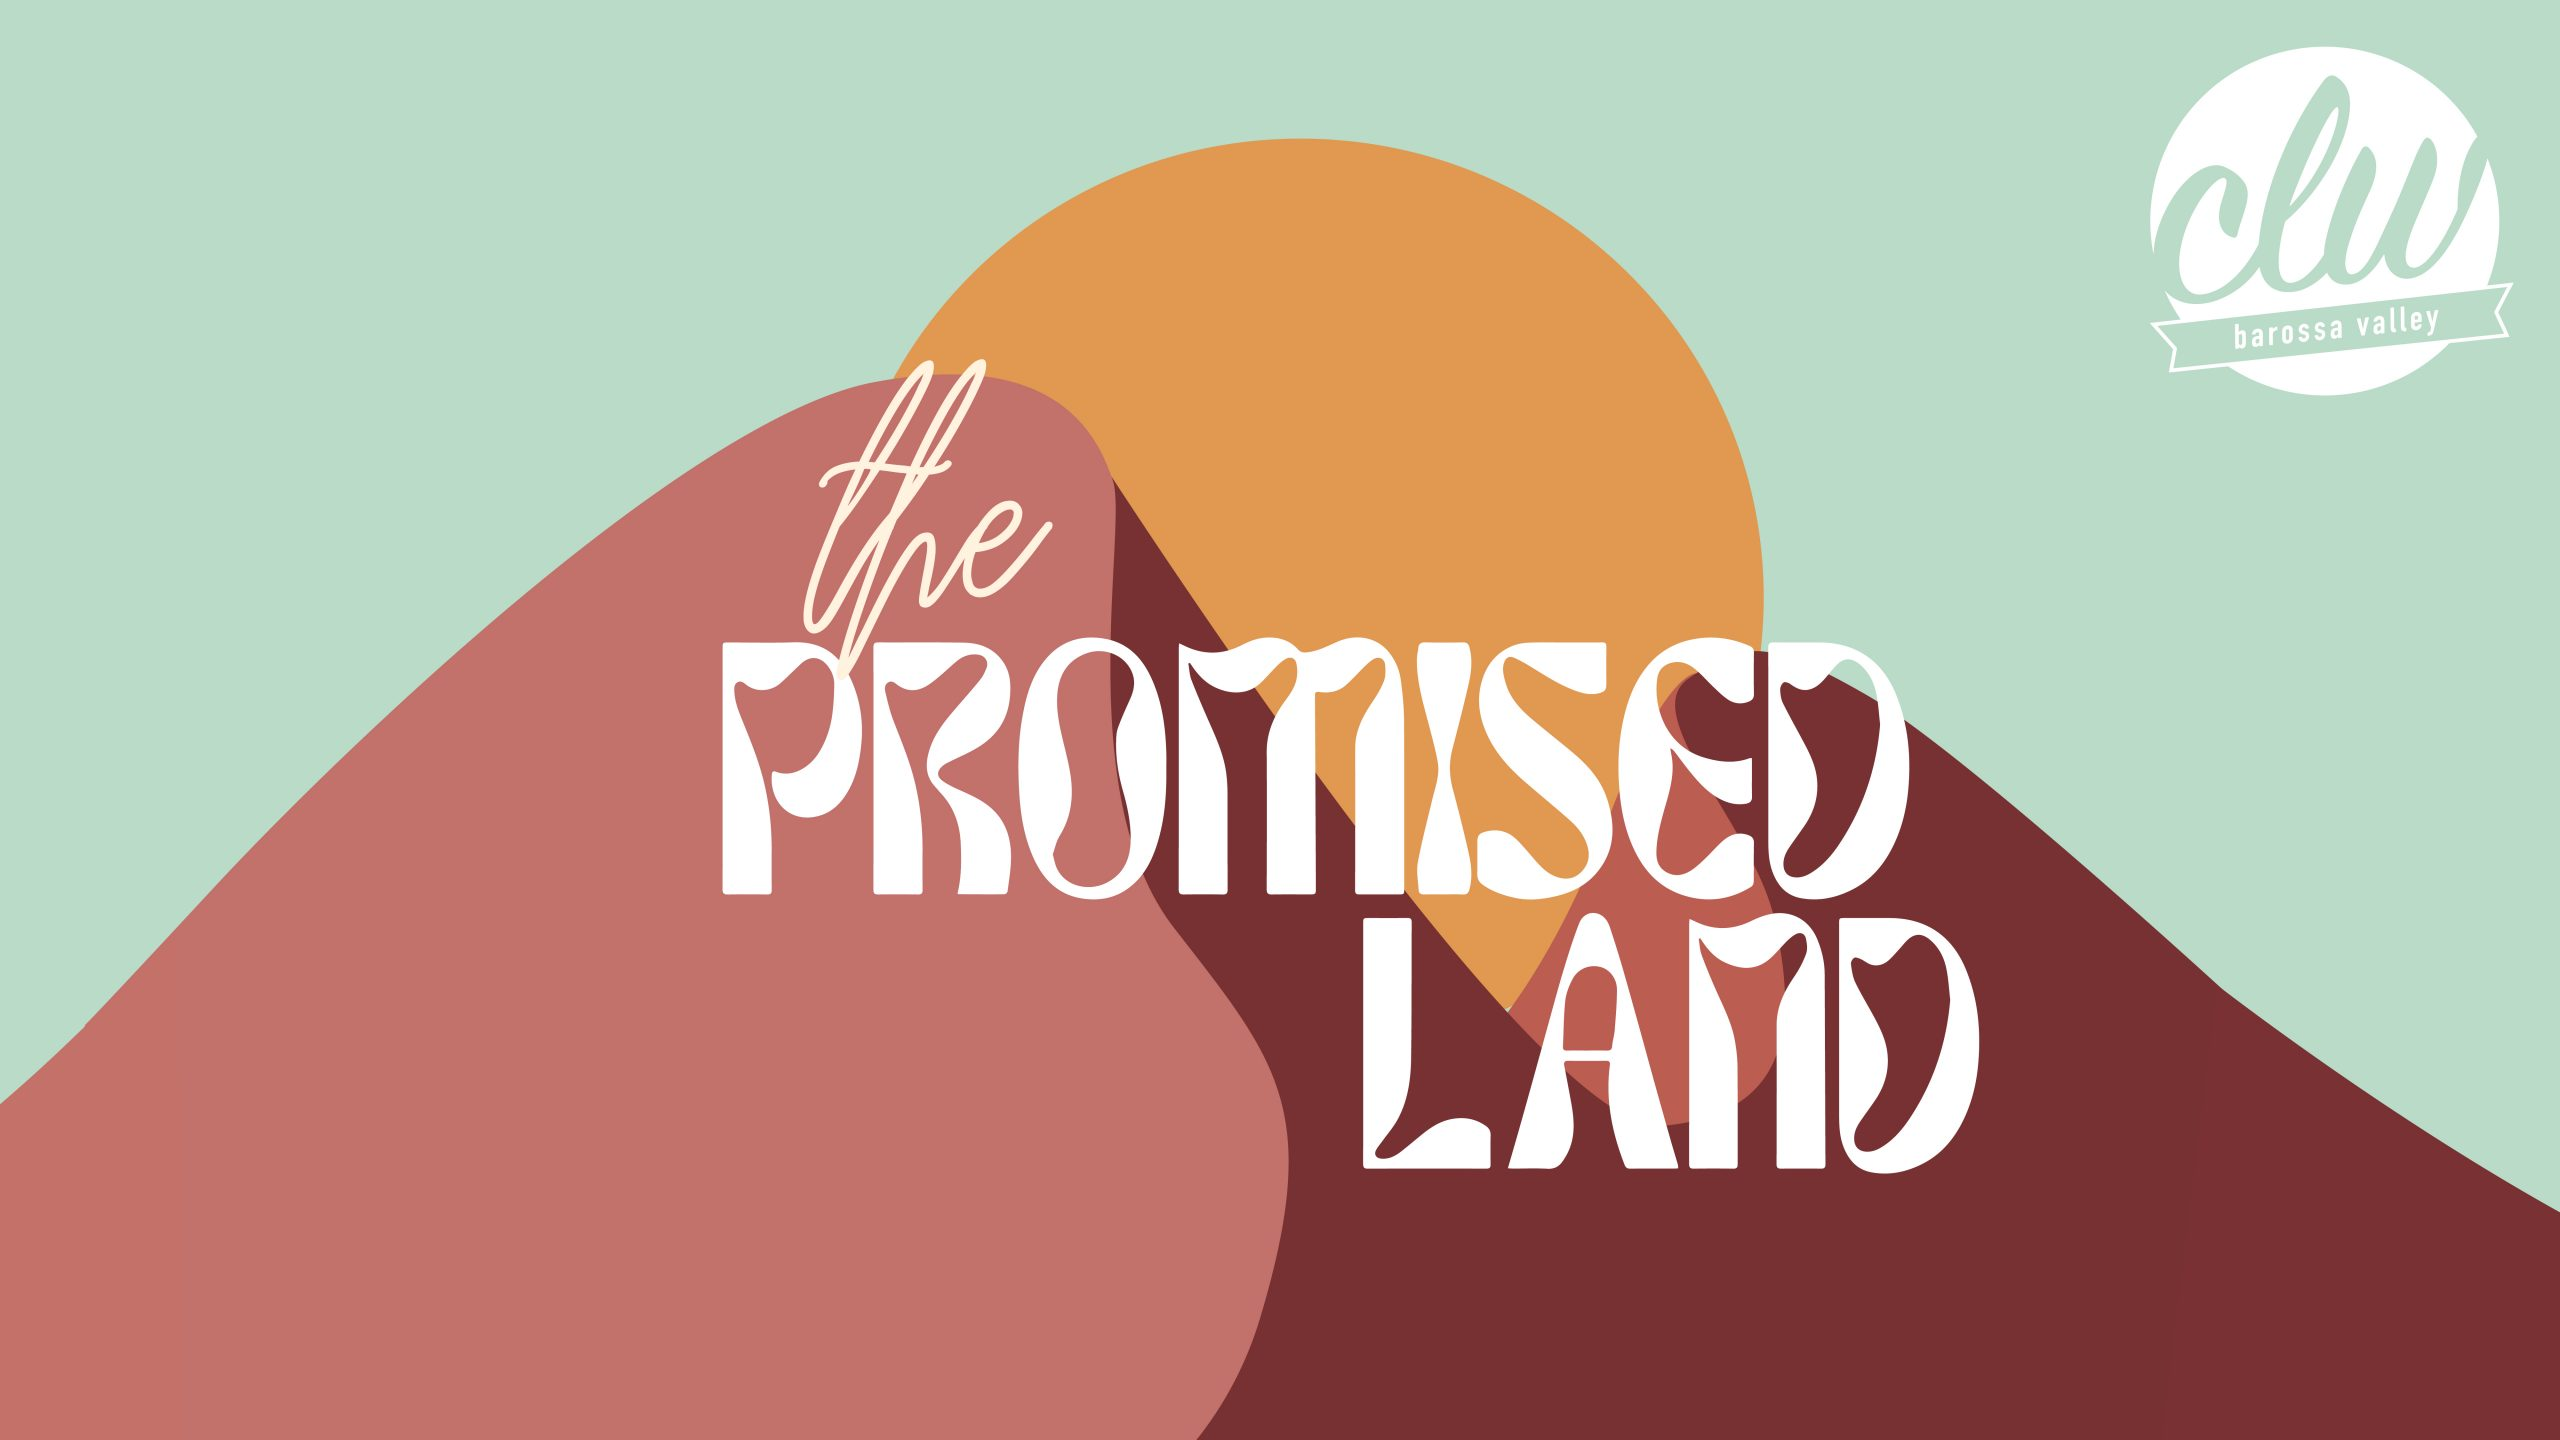 BVCLW21 promised land banner